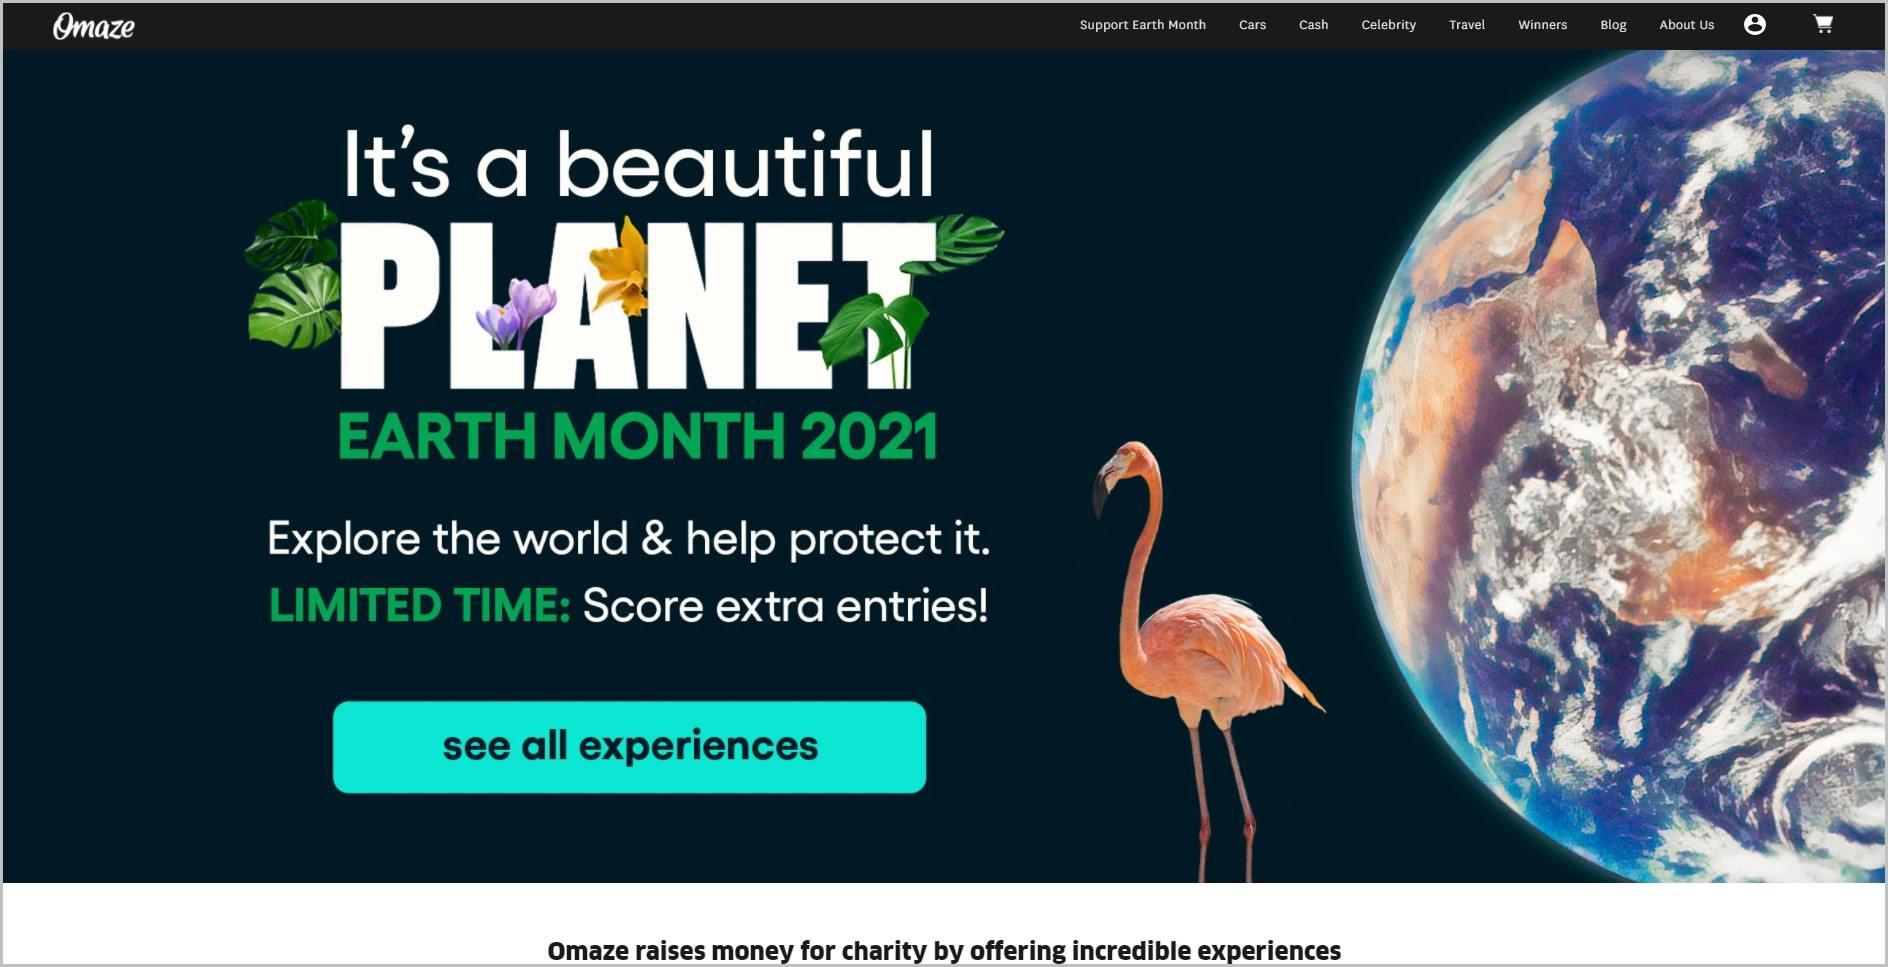 screenshot of Omaze homepage with black header with the website's name and main navigation menu, it showcases an image of earth and a pink flamingo